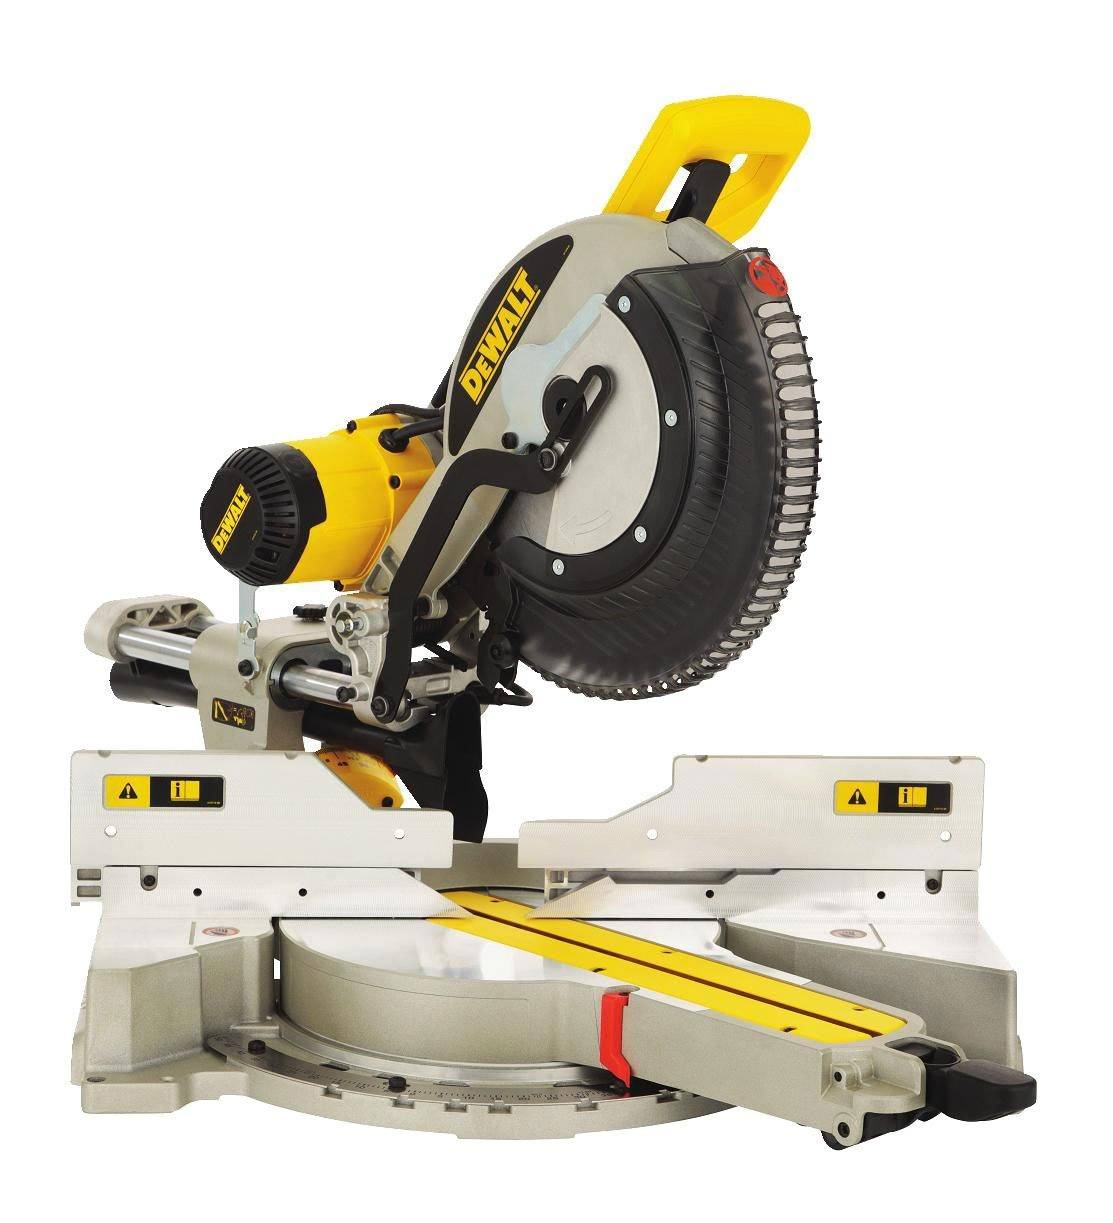 number 4 rated dewalt mitre saw